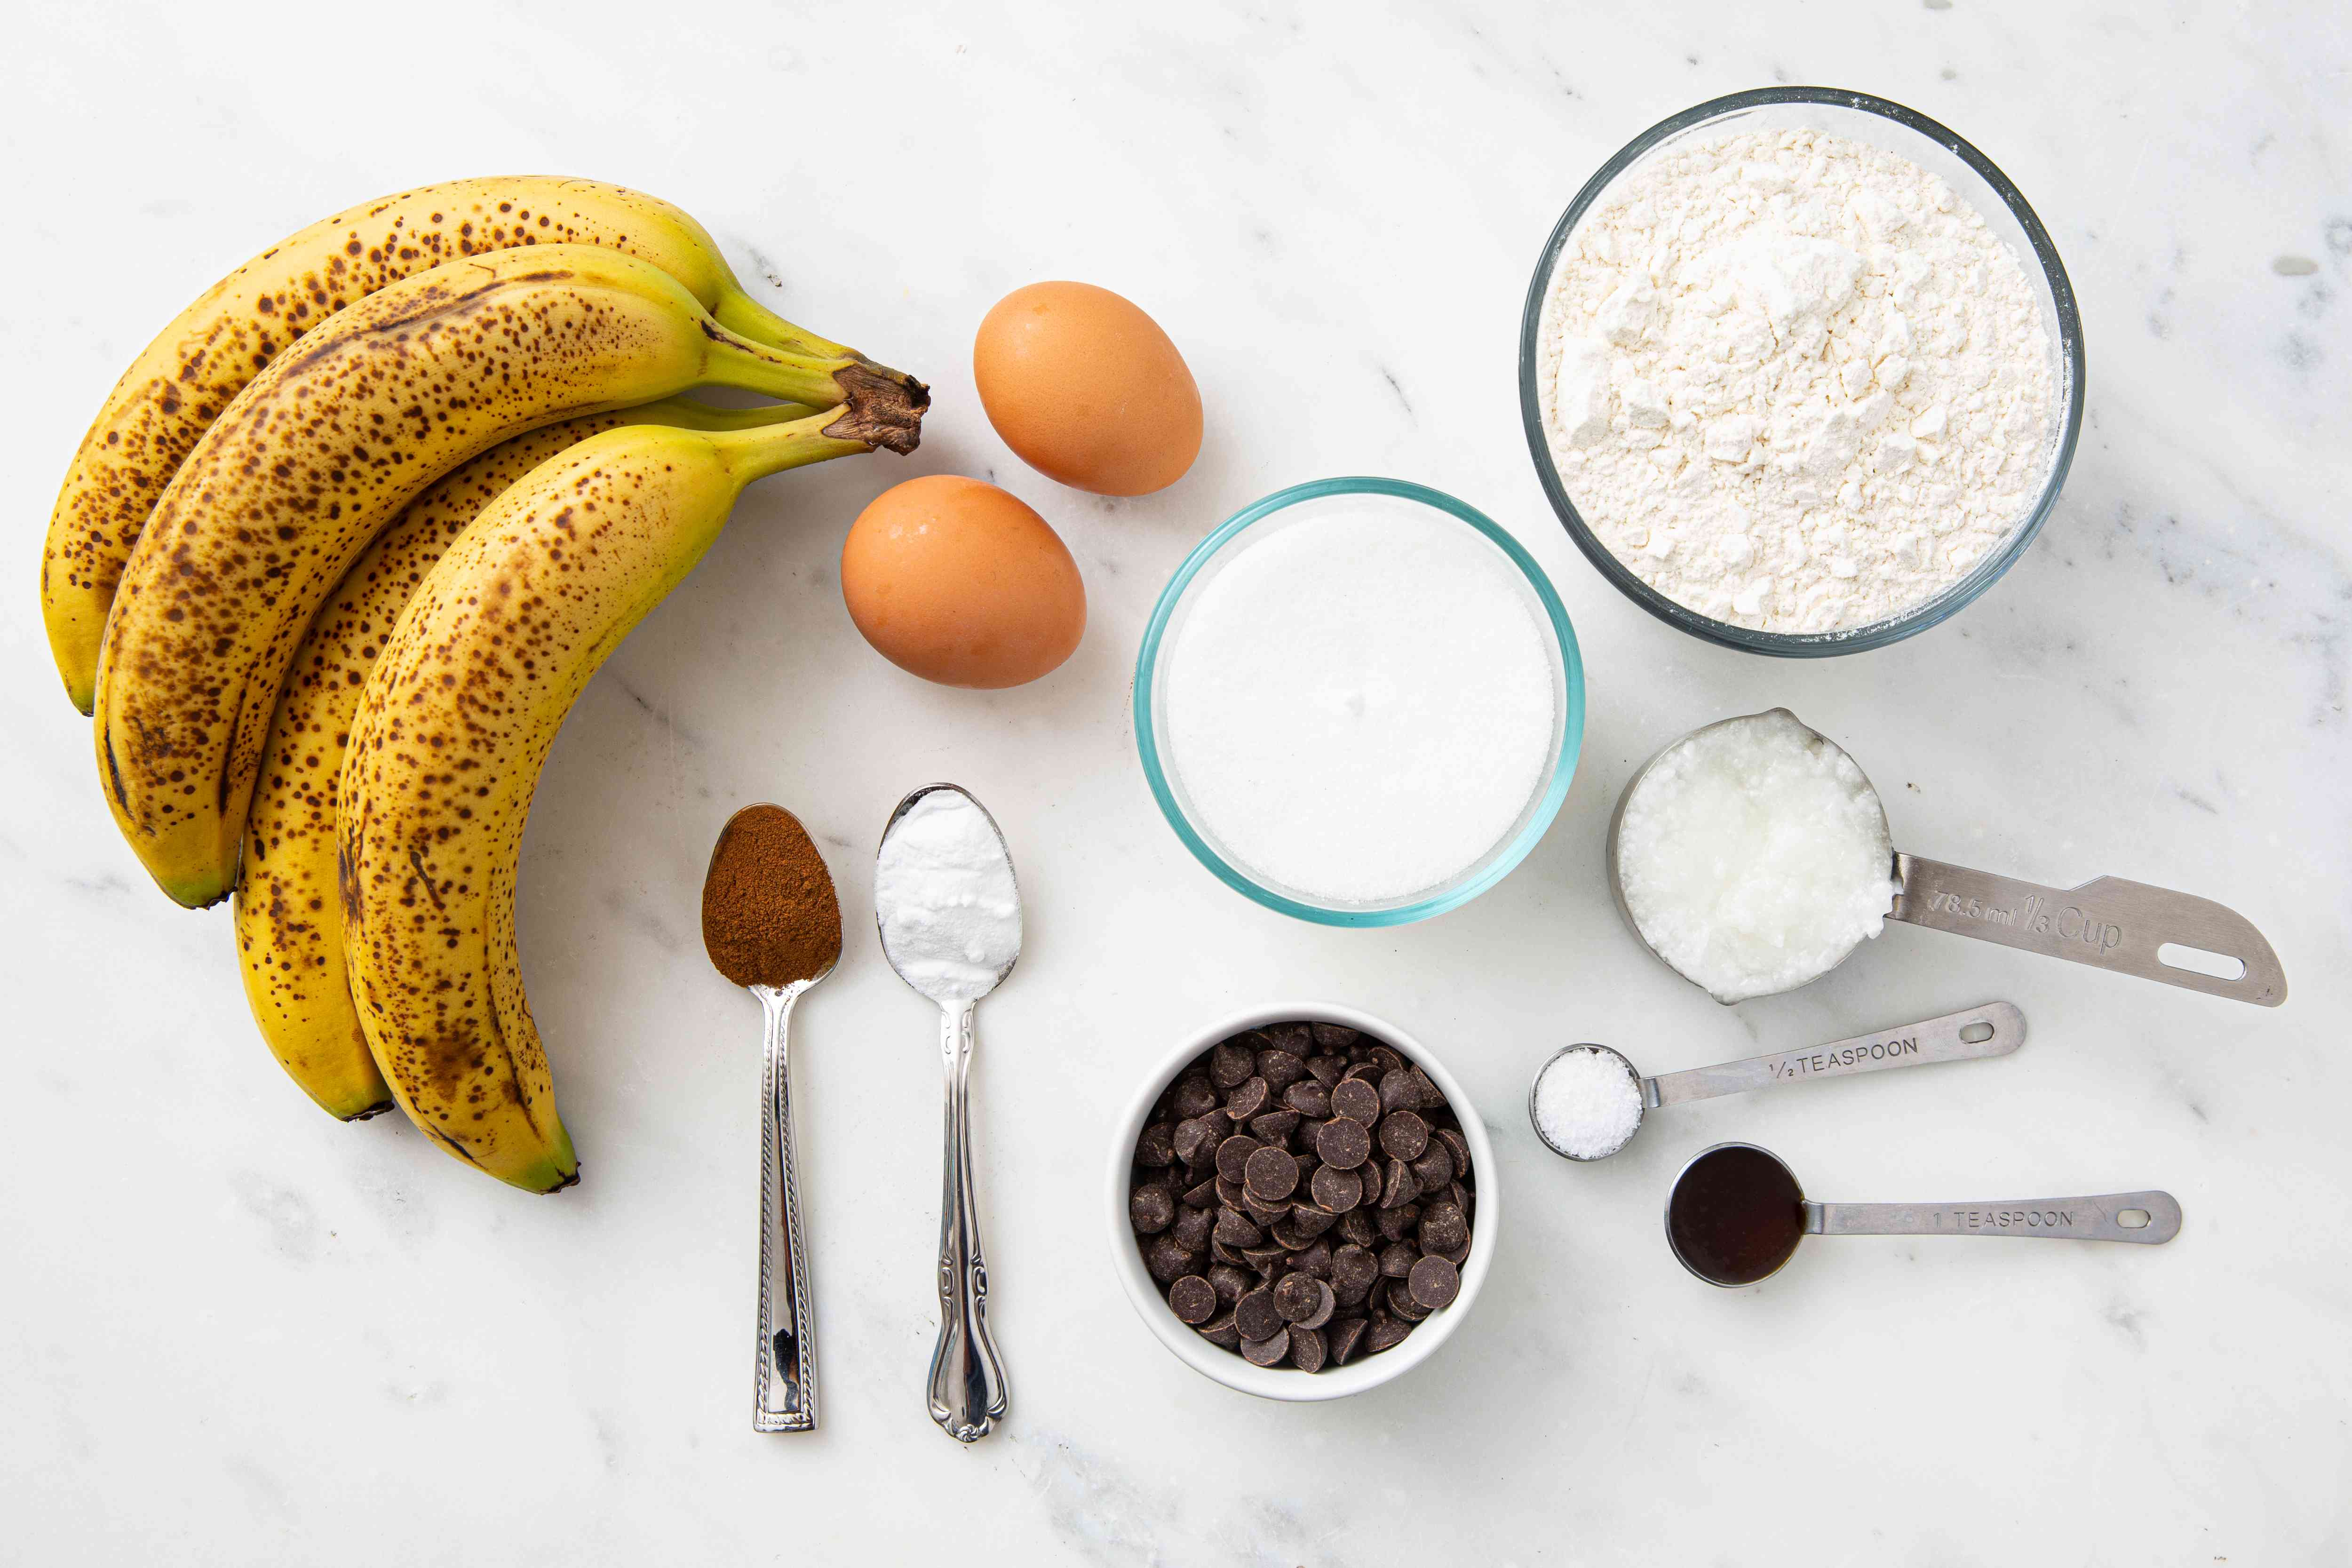 Ingredients for making moist banana bread with coconut oil